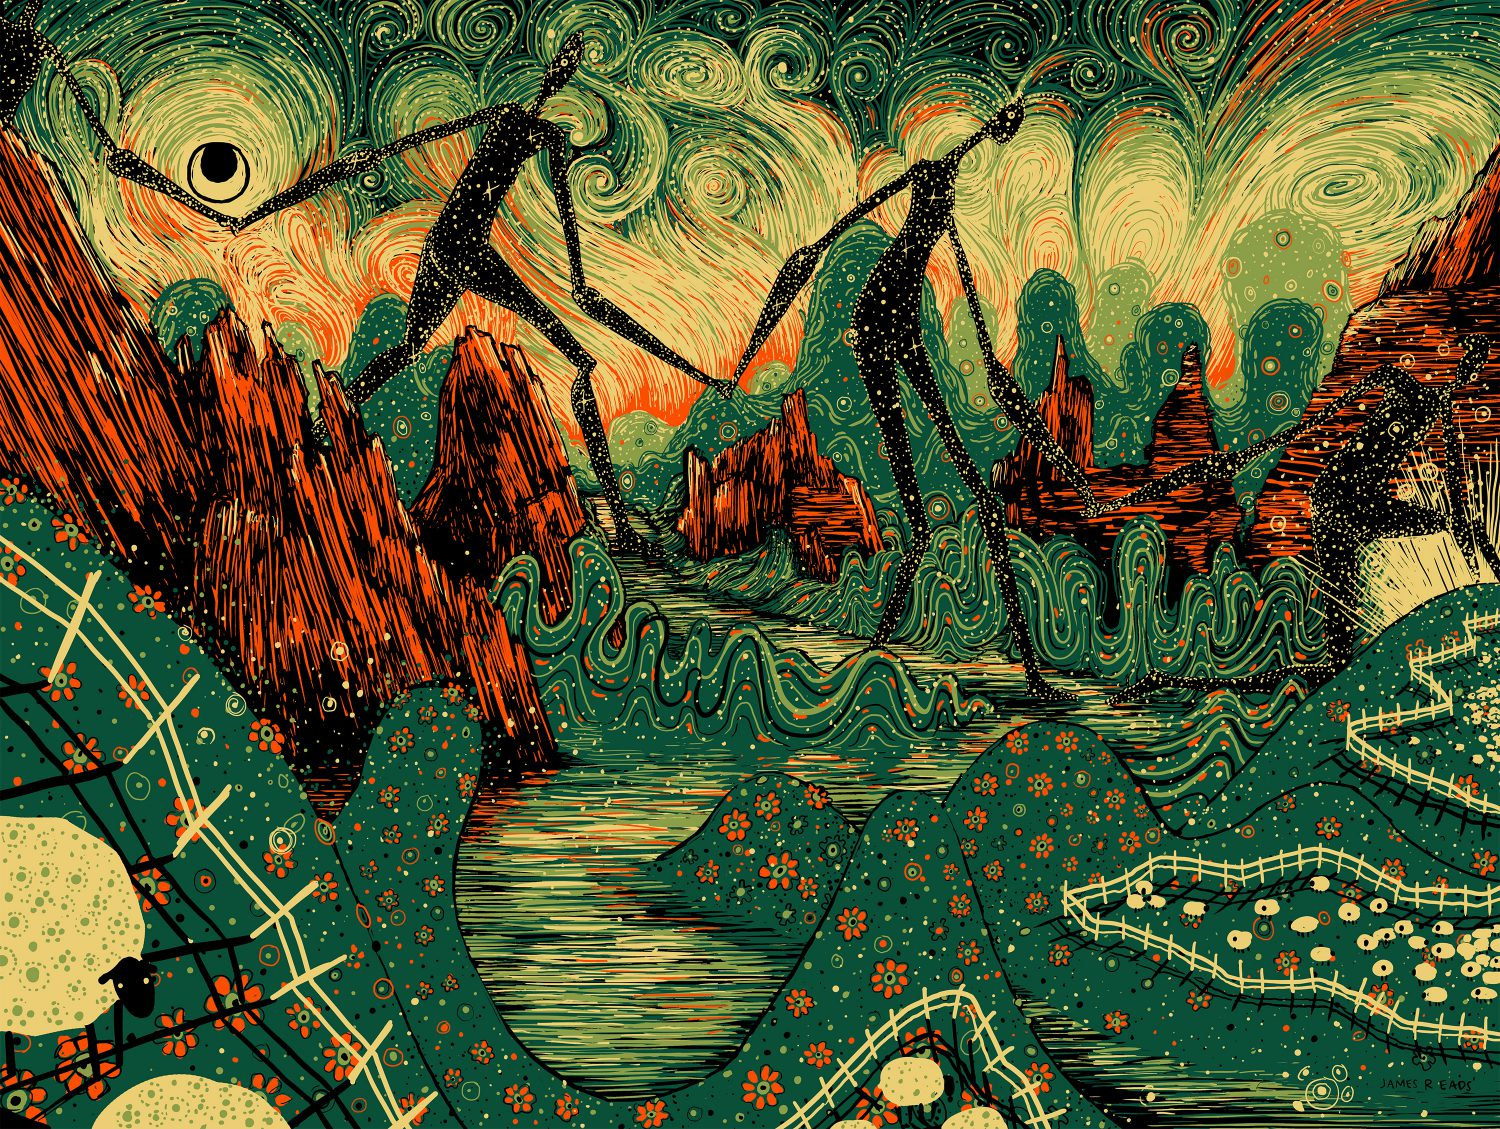 """Four Giants"" by James R Eads.  18"" x 24"" 4-color Screenprint.  Ed of 80 S/N.  $30"